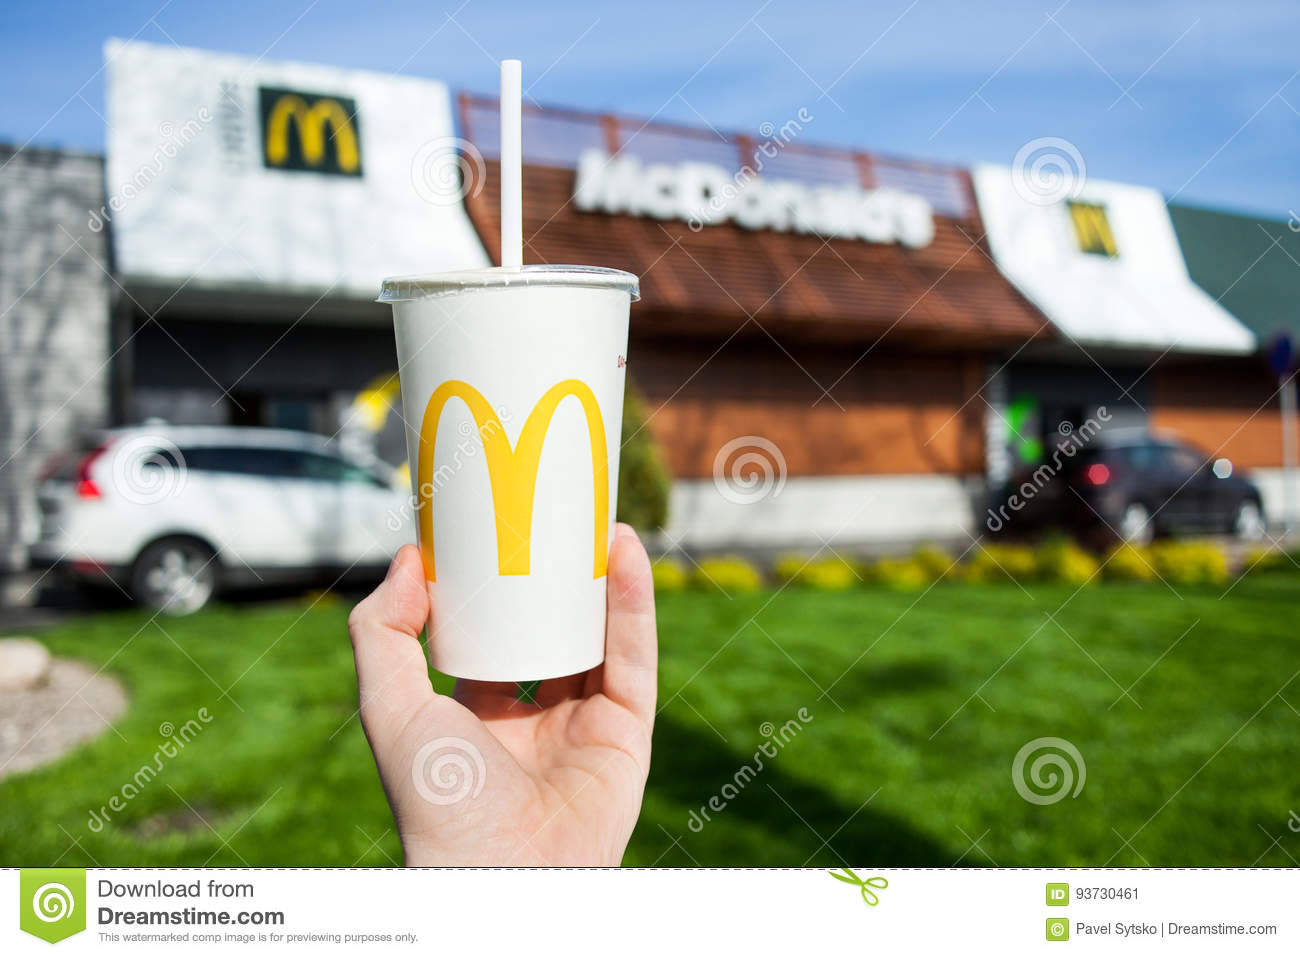 Minsk, Belarus, may 18, 2017: McDonald's soft drink paper cup in hand on blurry McDonald's Restaurant background